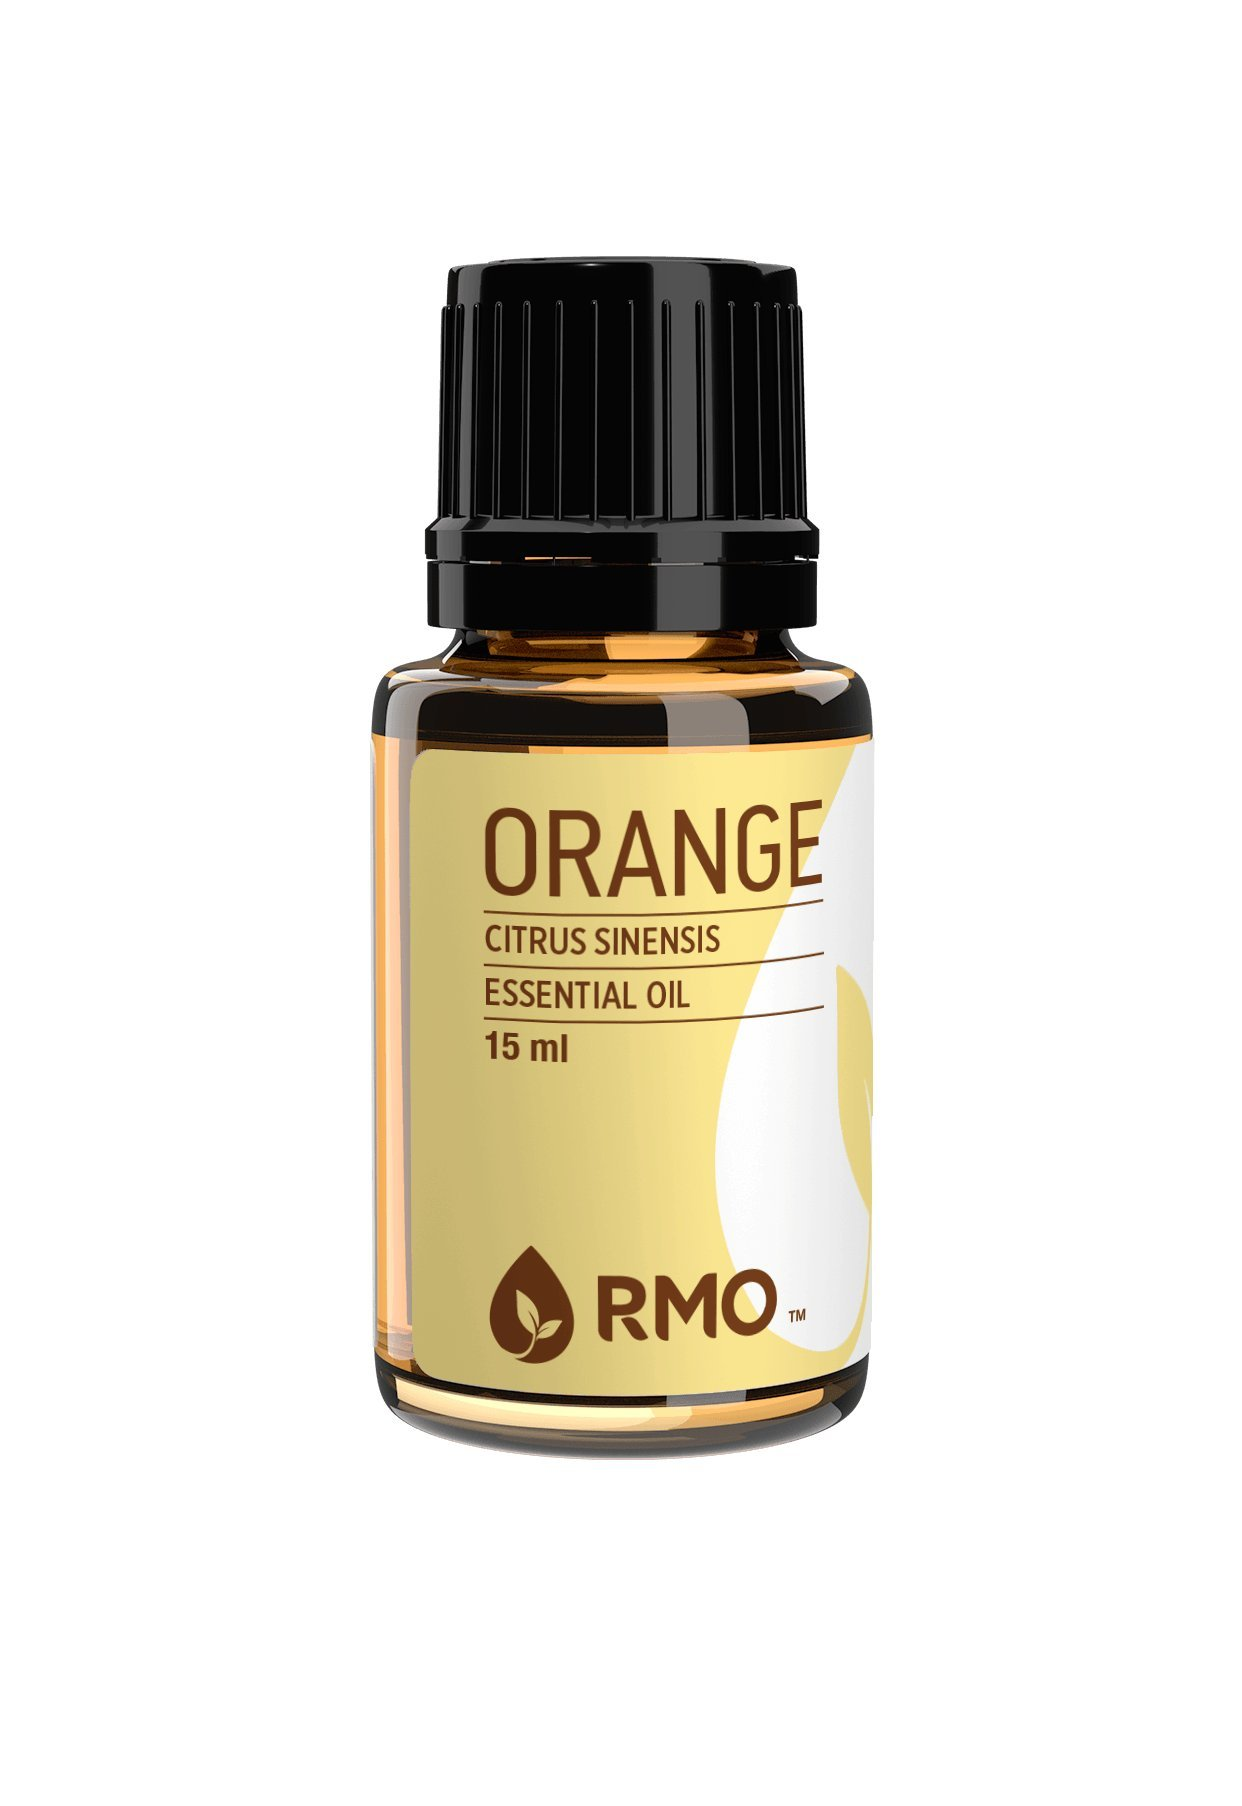 Rocky Mountain Oils - Orange-15ml | 100% Pure & Natural Essential Oils | For Topical Uses That Inspire Cheerfulness & Optimism, As Well As A Great Fragrance For Cleaners